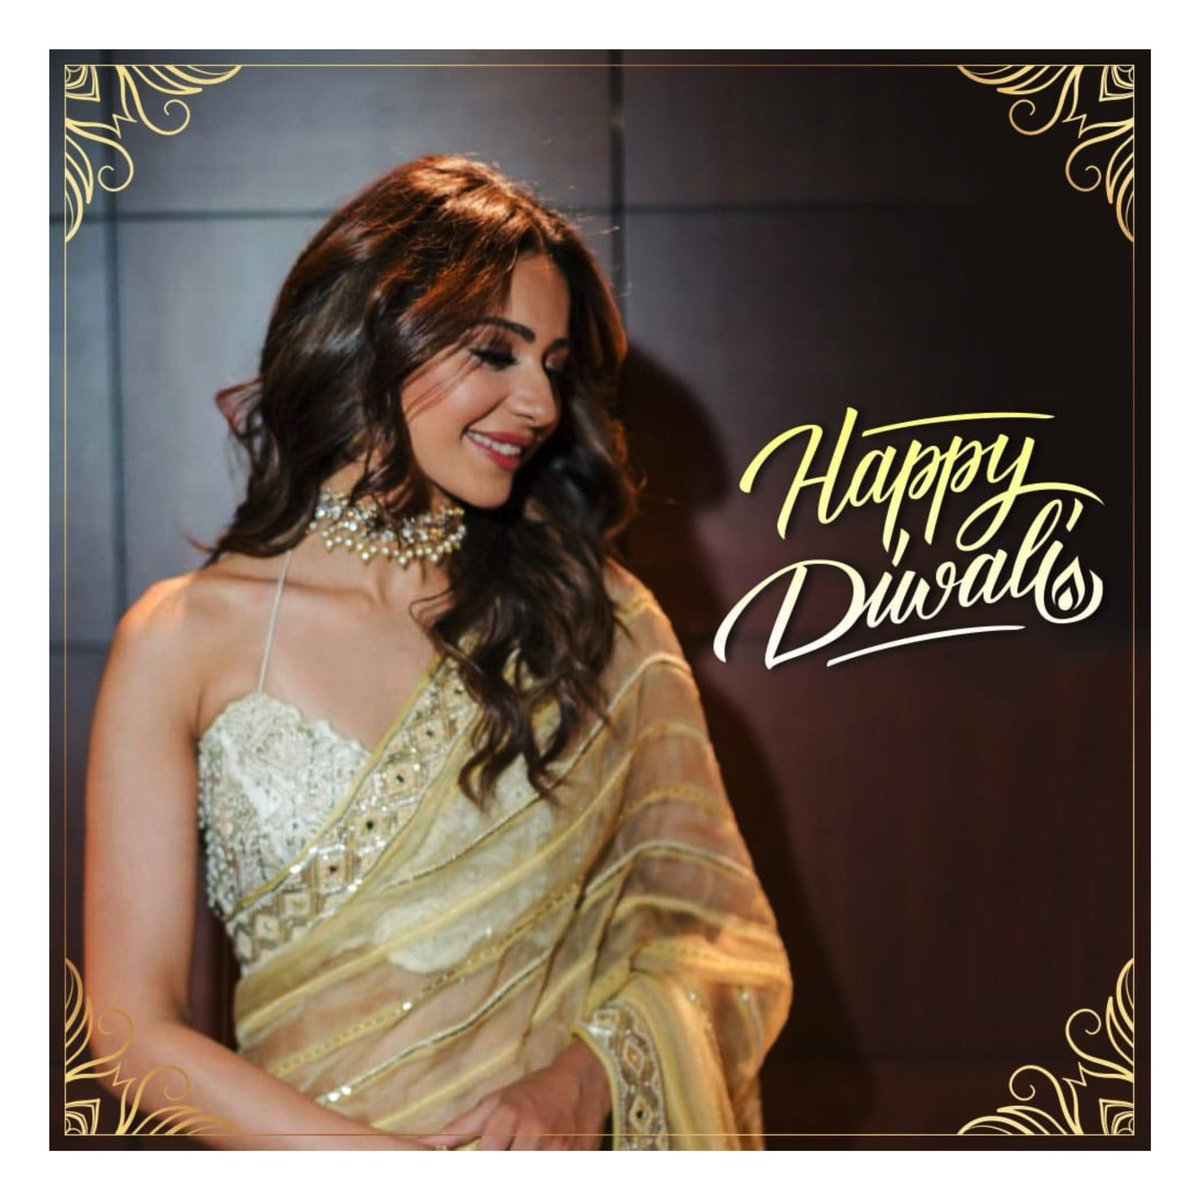 Happppy happppy Diwali to all of you ❤️ may there be love and light, peace and happiness in all your lives ❤️